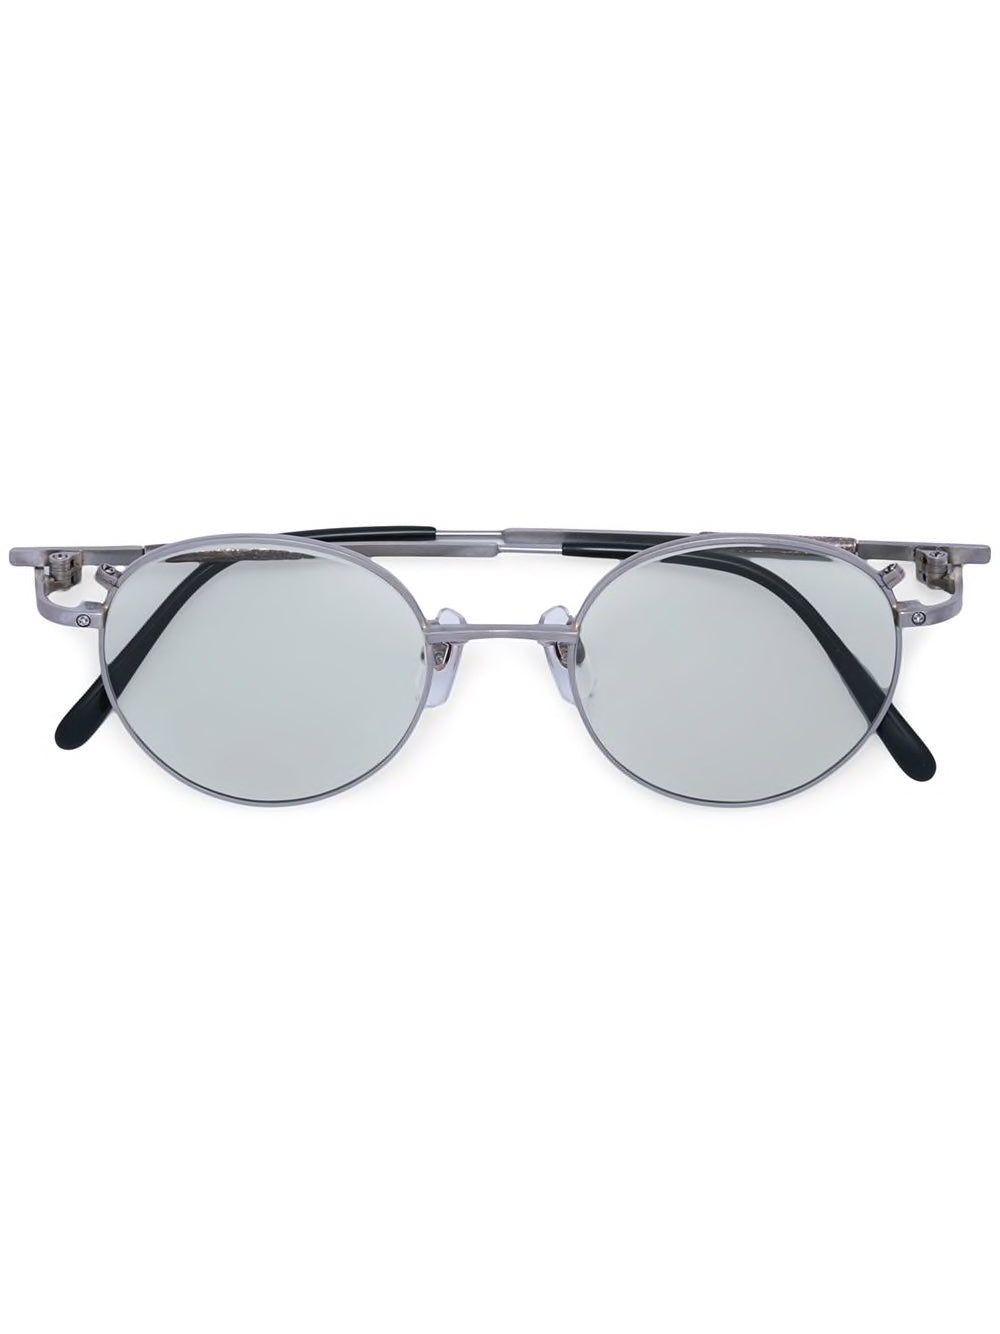 TAICHI MURAKAMI TITANIUM FRAME SUNGLASSES WITH LIGHT GREY LENS